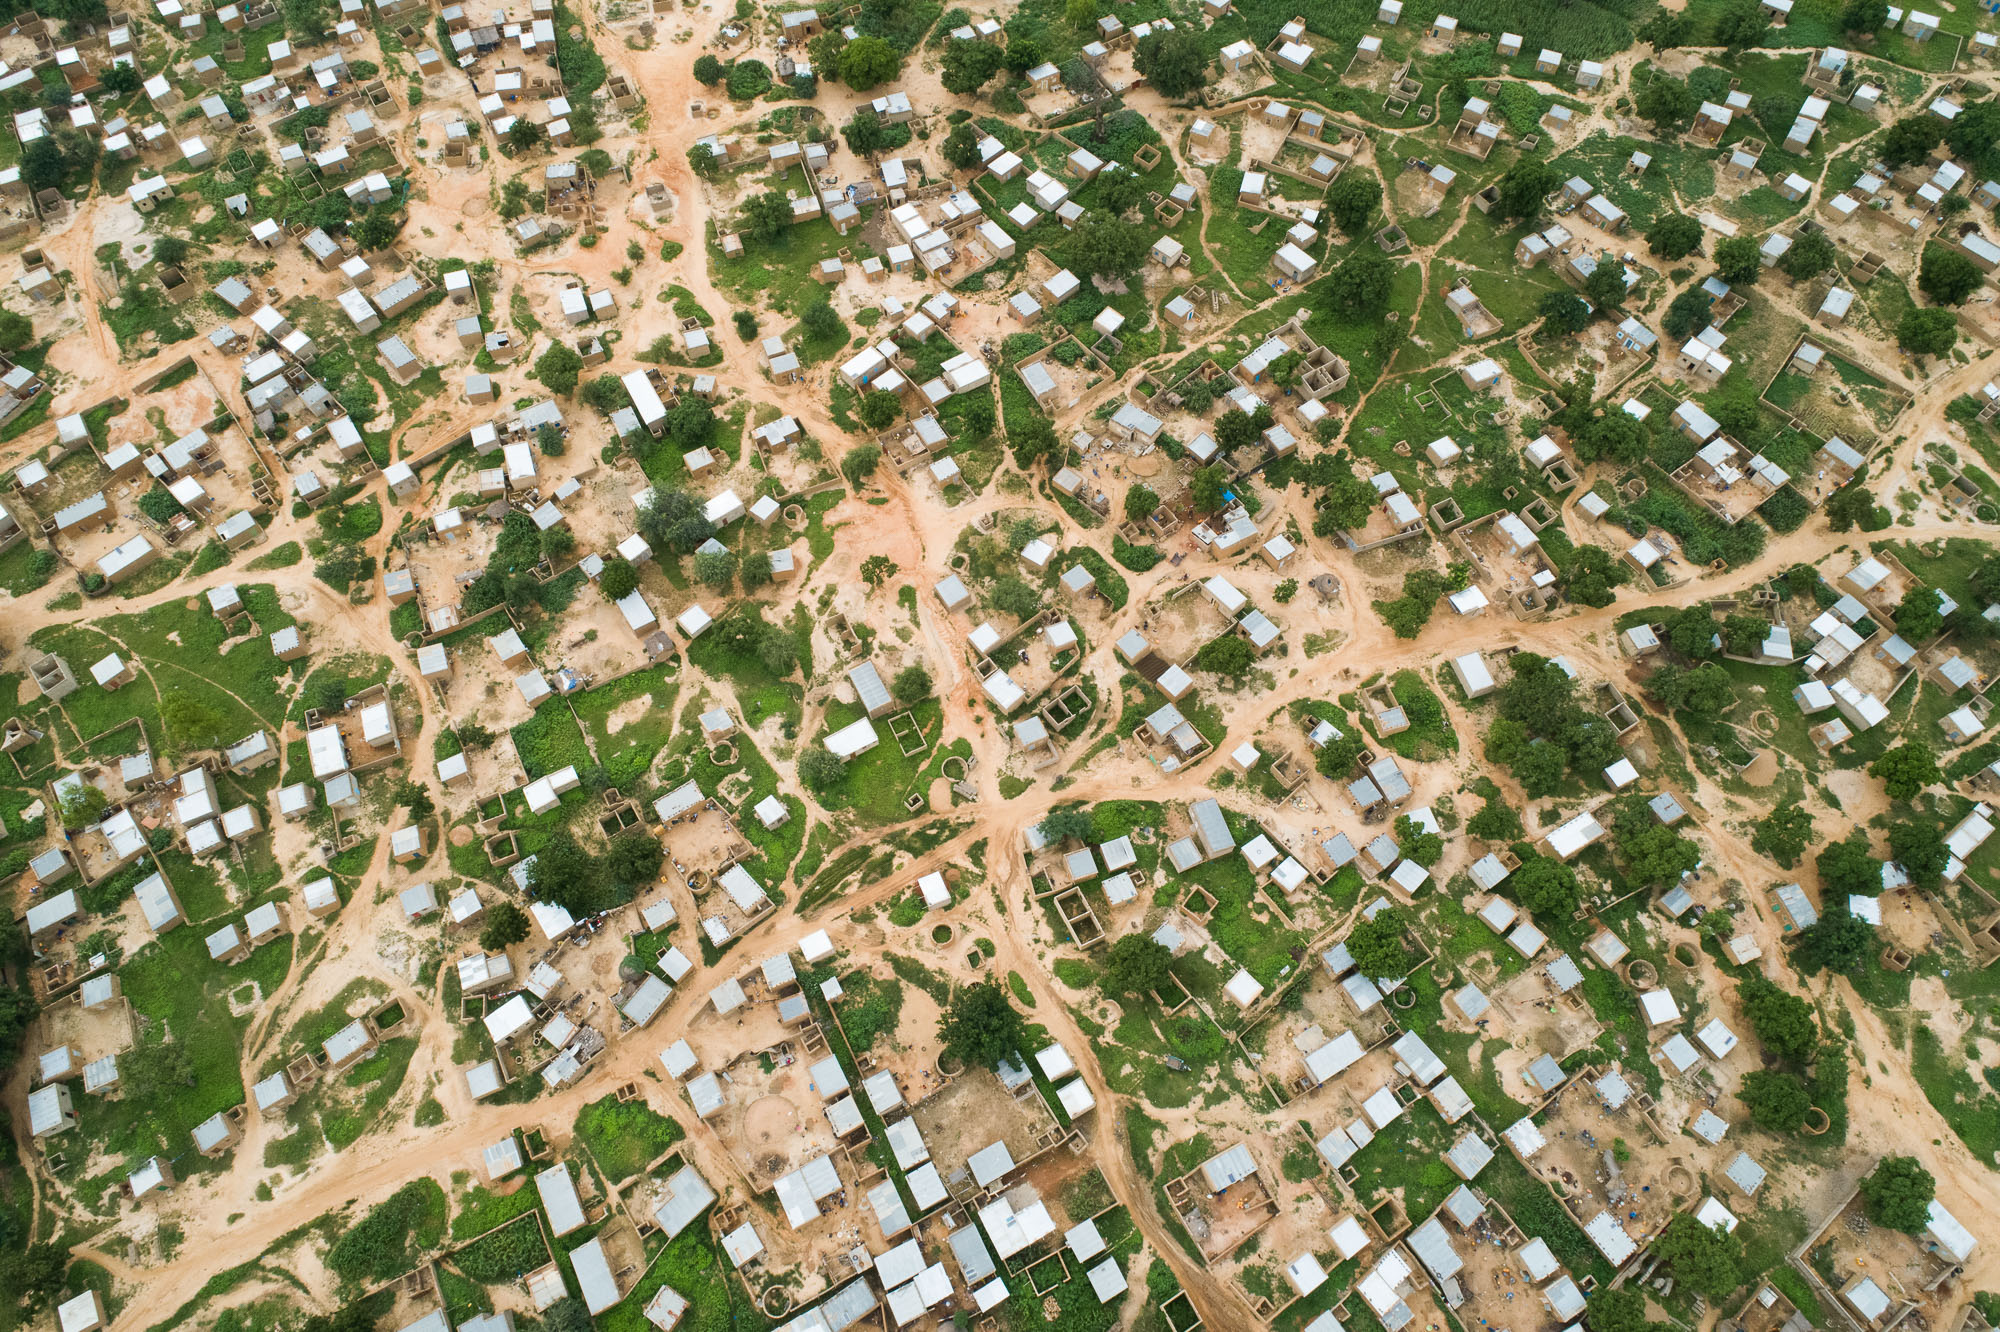 Rooftops are seen from a bird's eye view in Fada N'gourma, Burkina Faso.